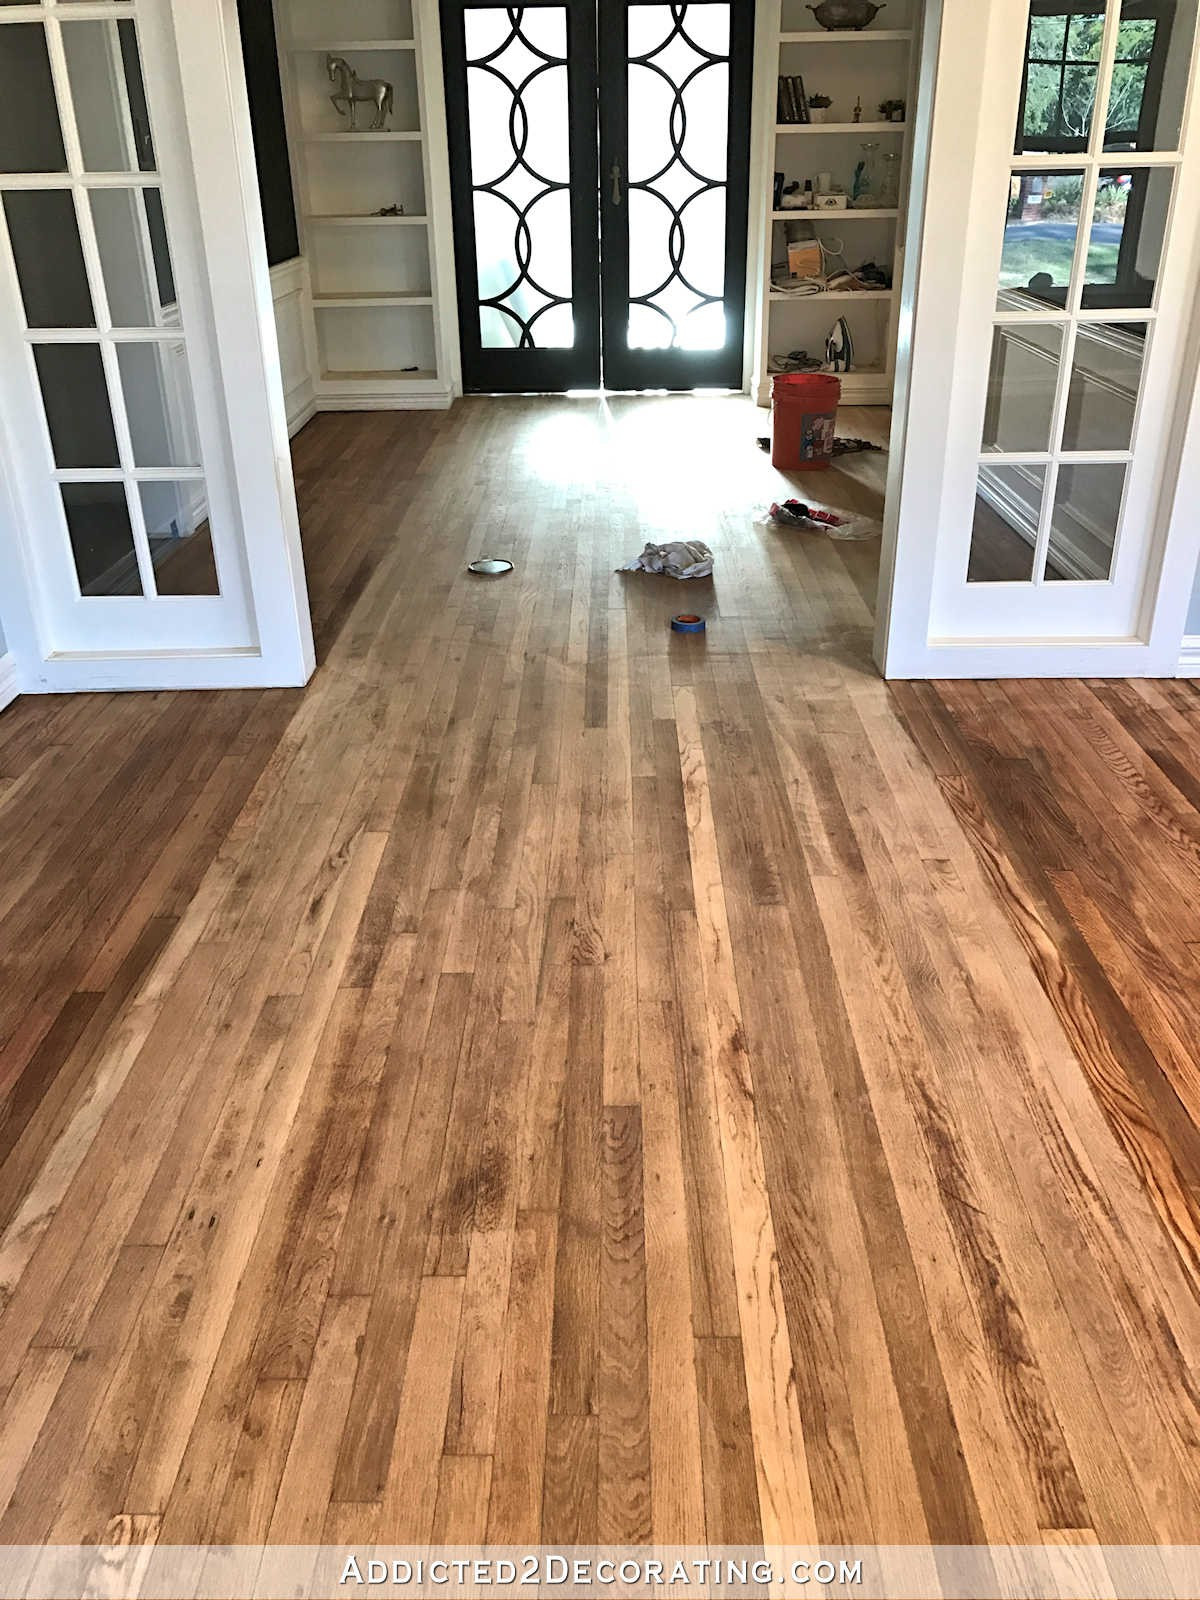 what to clean prefinished hardwood floors with of 19 unique how much does it cost to refinish hardwood floors gallery for how much does it cost to refinish hardwood floors unique adventures in staining my red oak